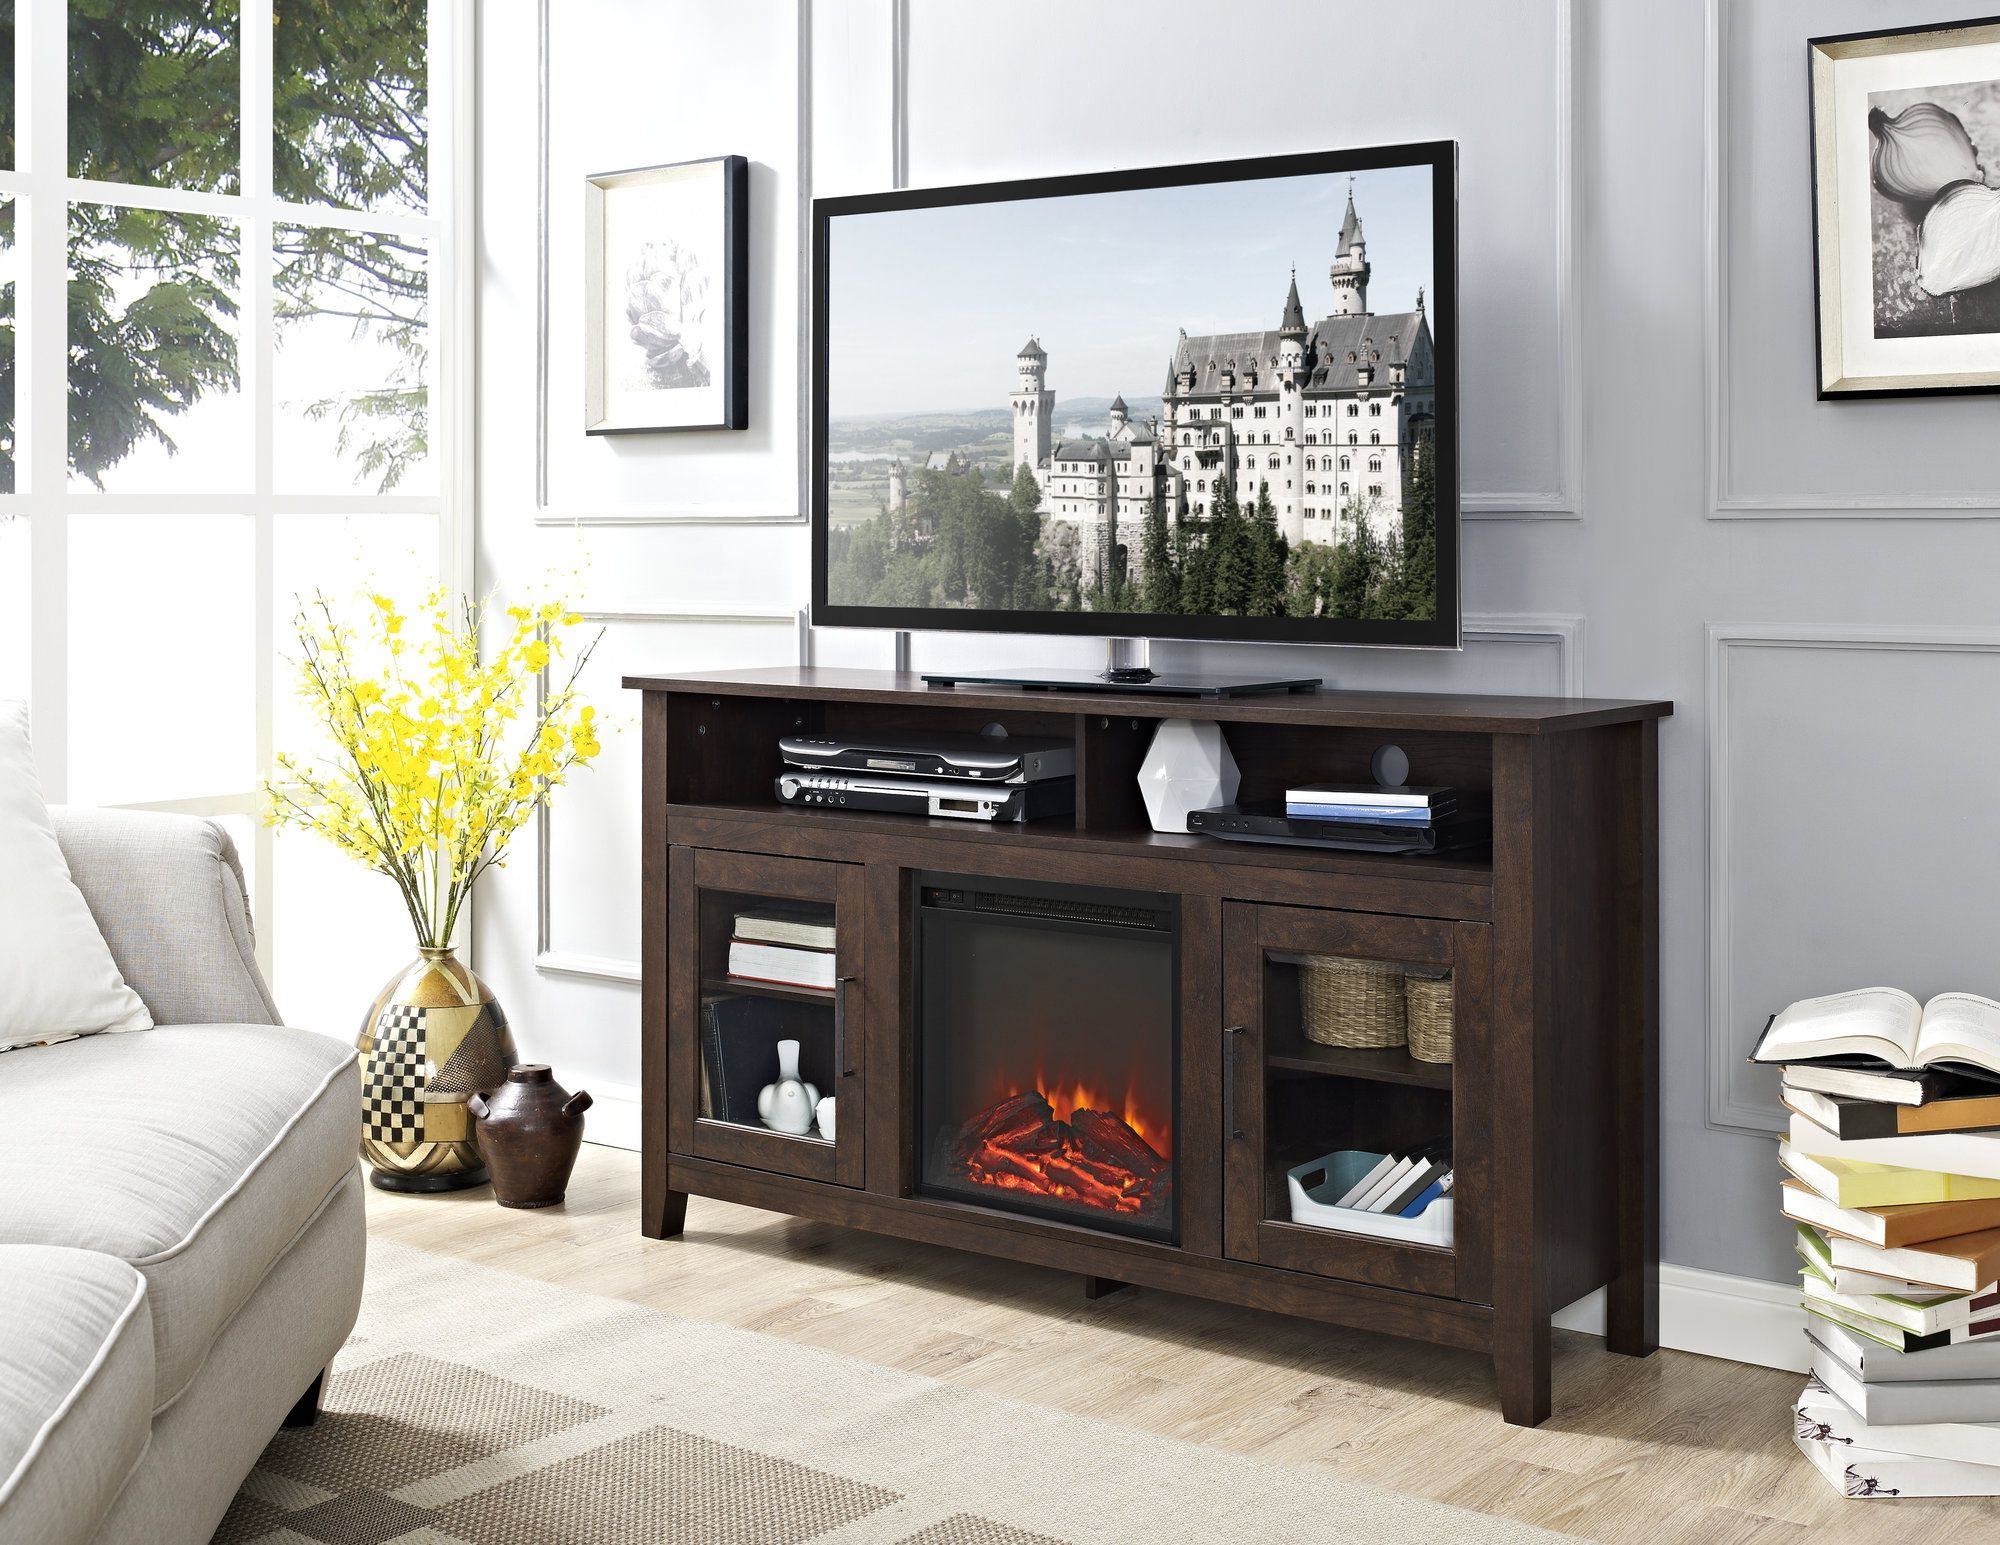 Trendy Pin On Decorating / Home Ideas Inside Woven Paths Barn Door Tv Stands In Multiple Finishes (View 10 of 10)